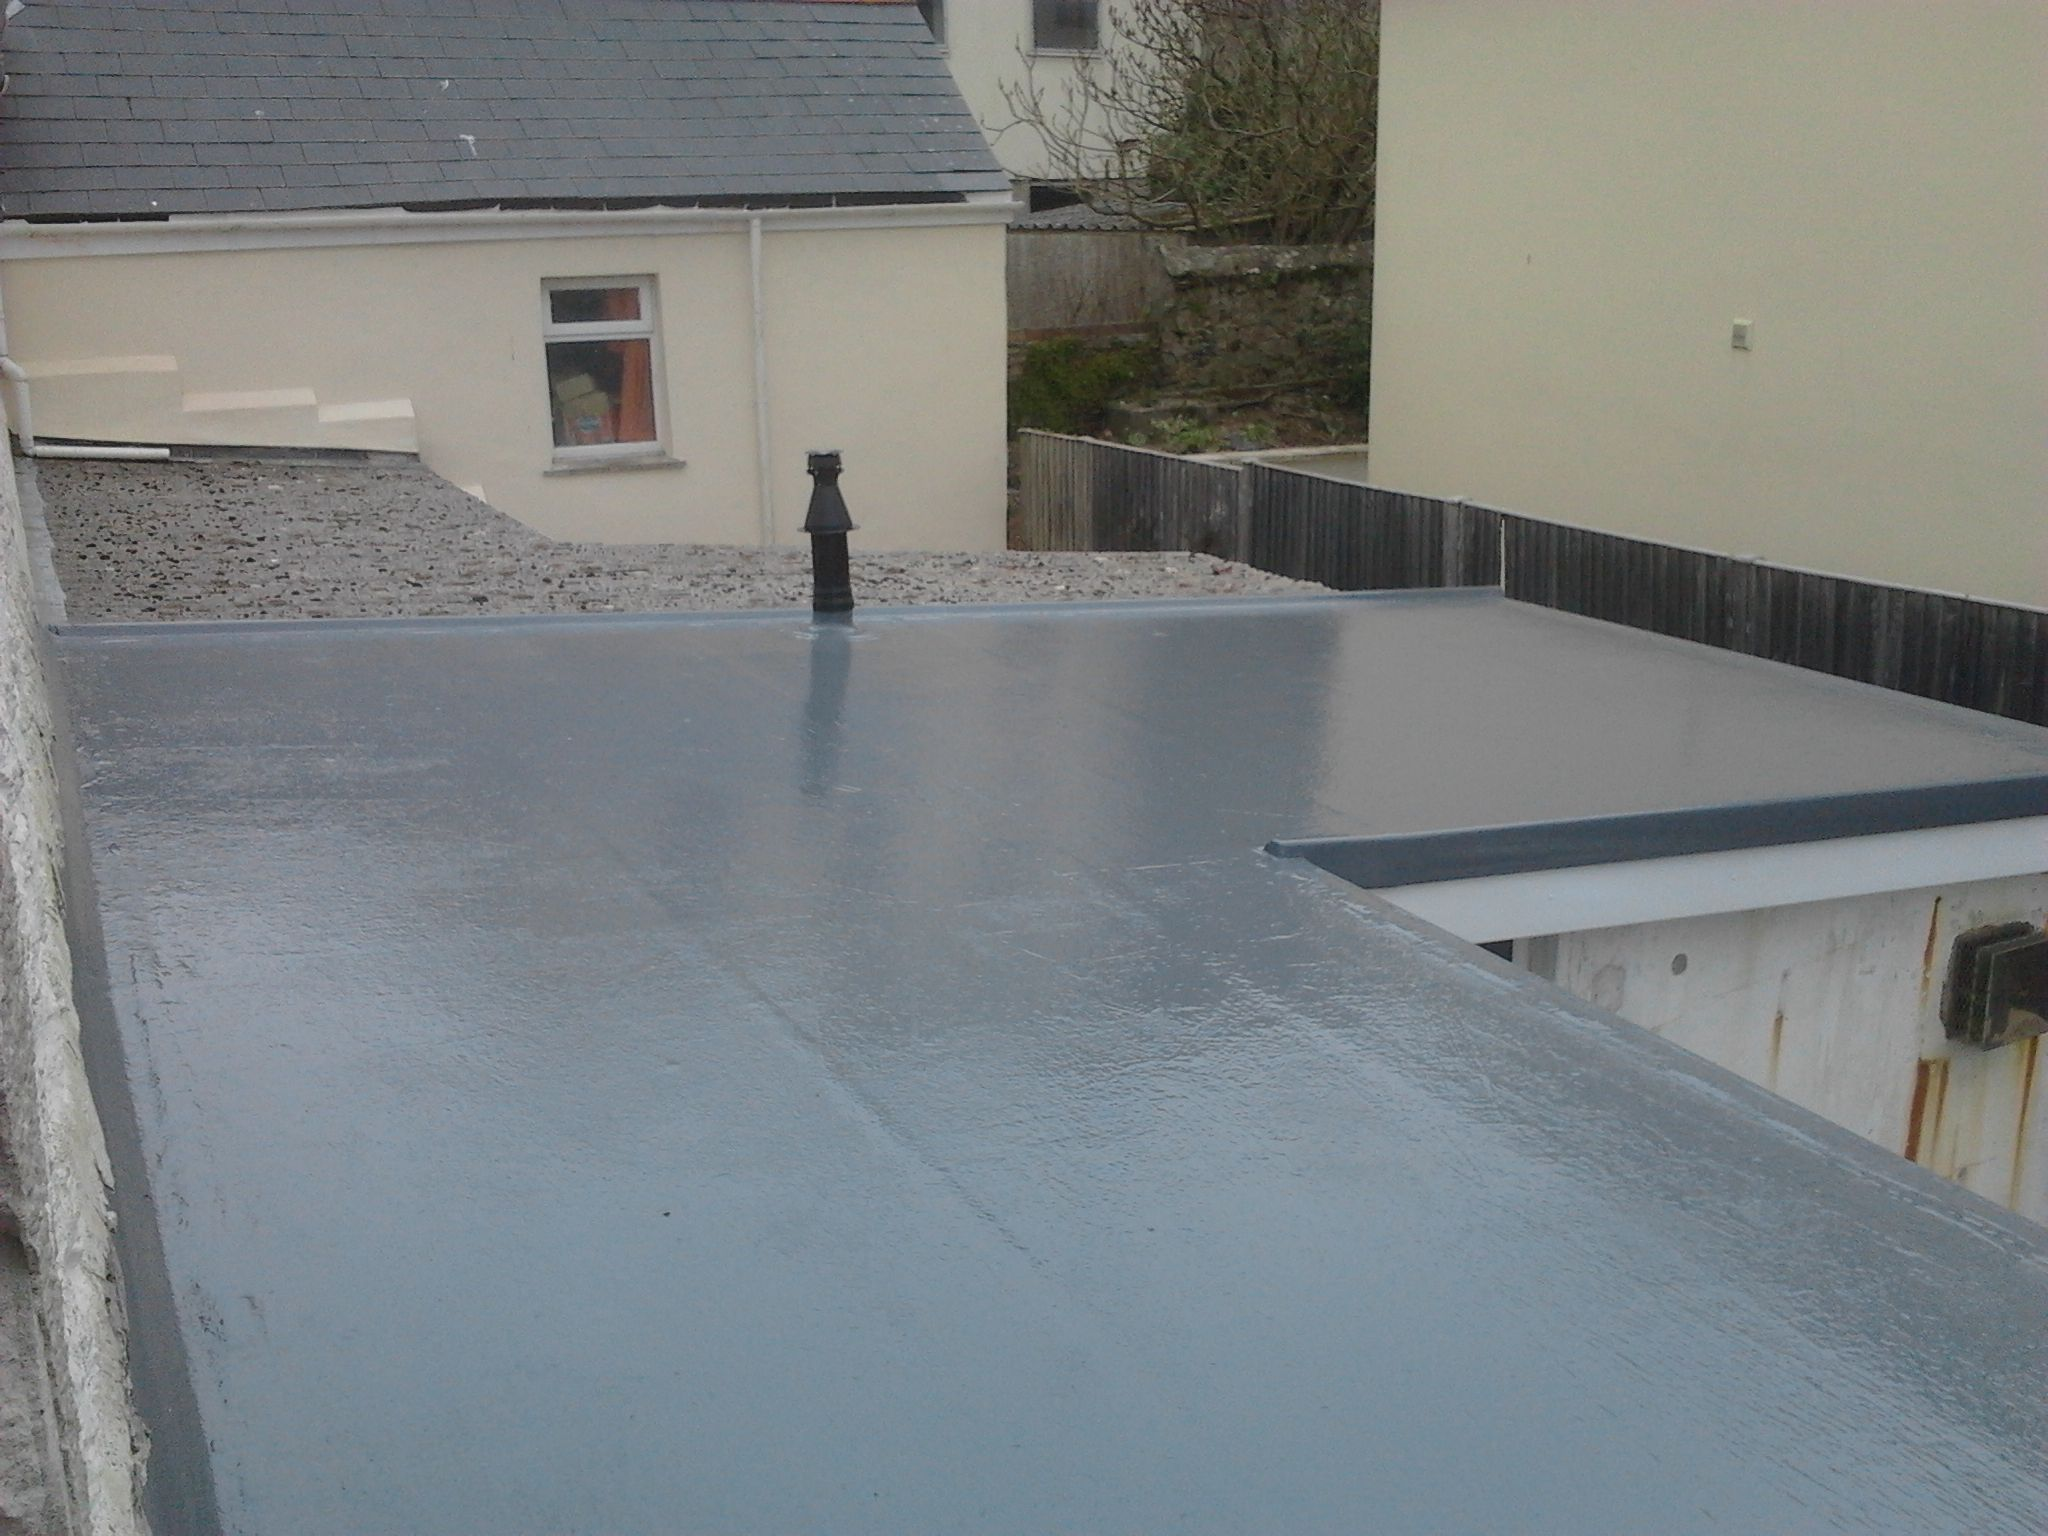 Fibreglass Roofing In Cornwall Pellow Flat Roofing Ltd Fibreglass Roof Roofing Glass Roof